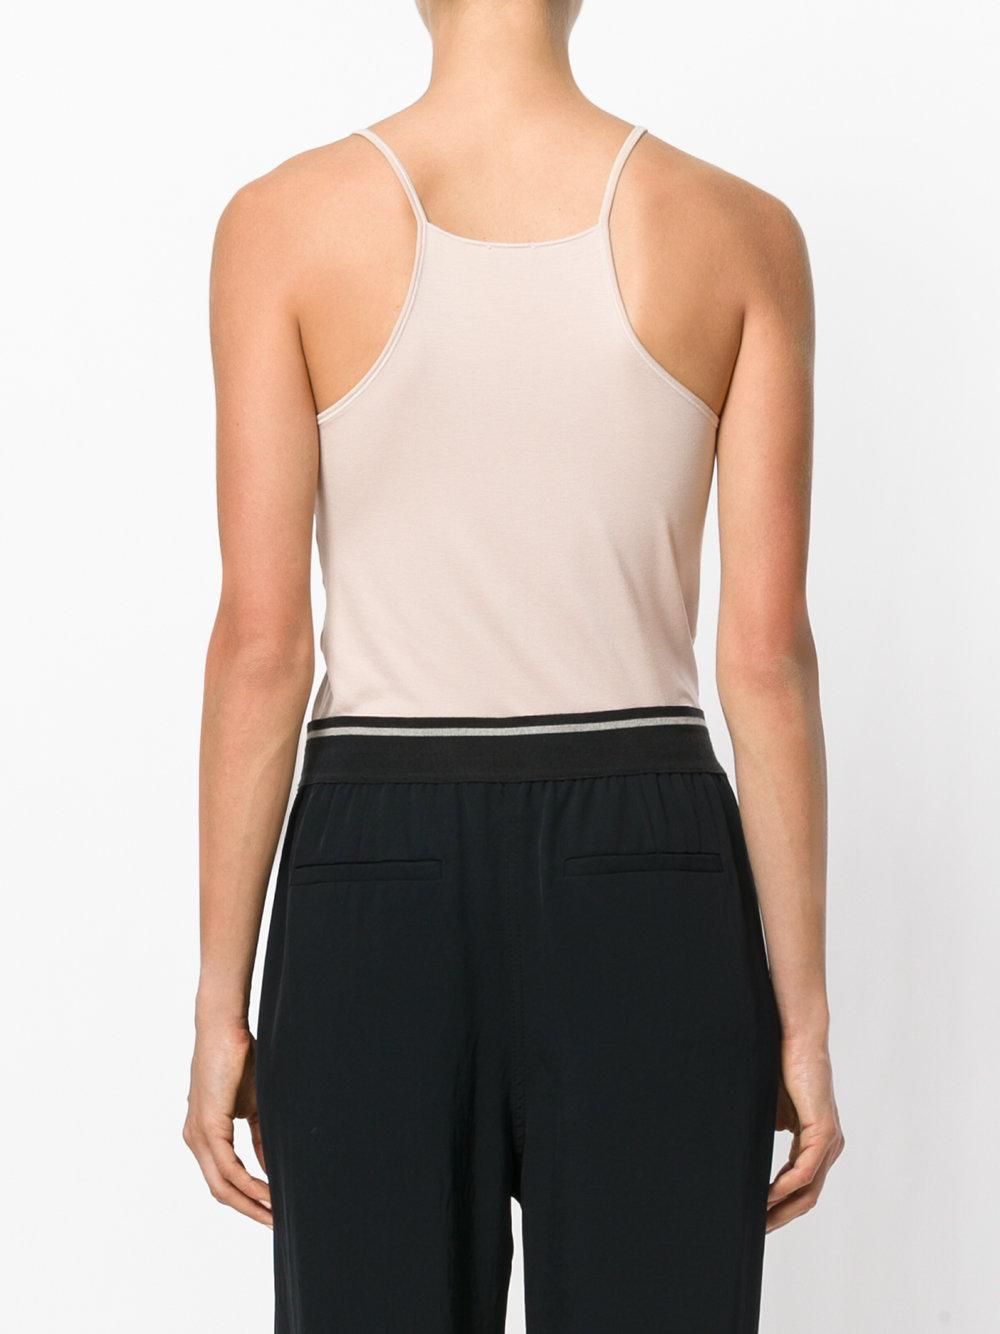 Outlet Store Online classic slim-fit cami - Nude & Neutrals Joseph Latest Collections Sale Online 99QsB3n